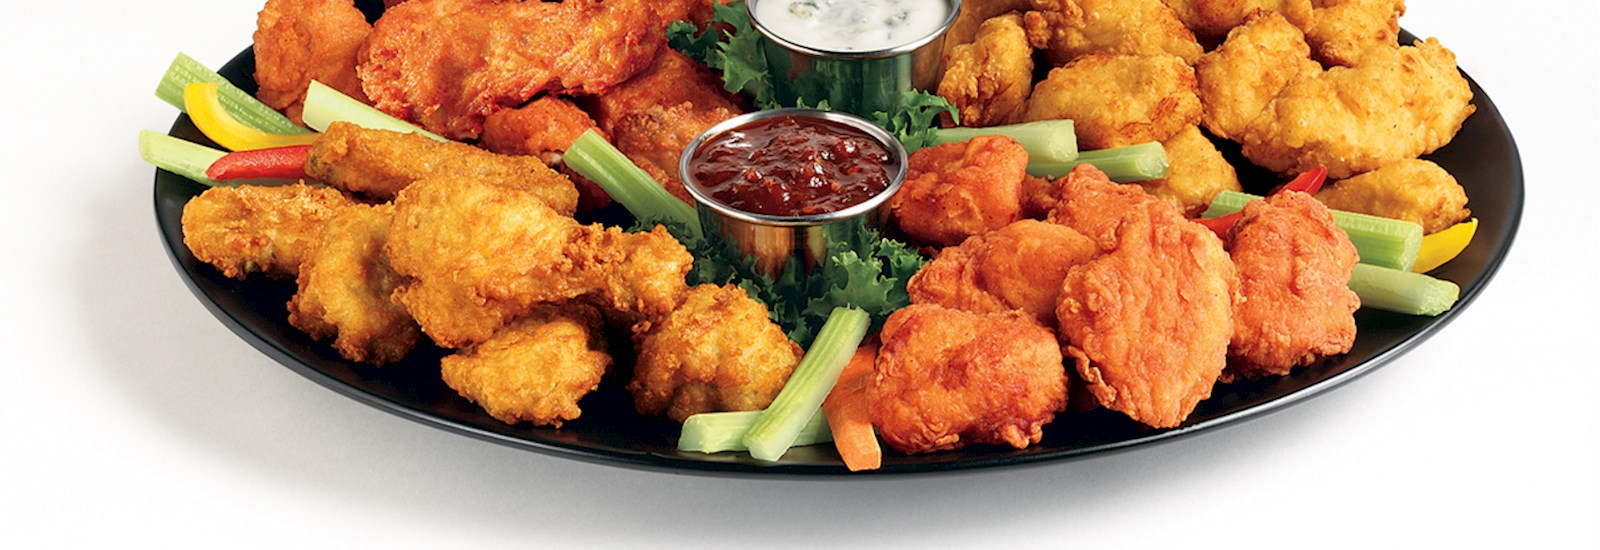 CHECK OUT OUR WING DINGS REBATE!